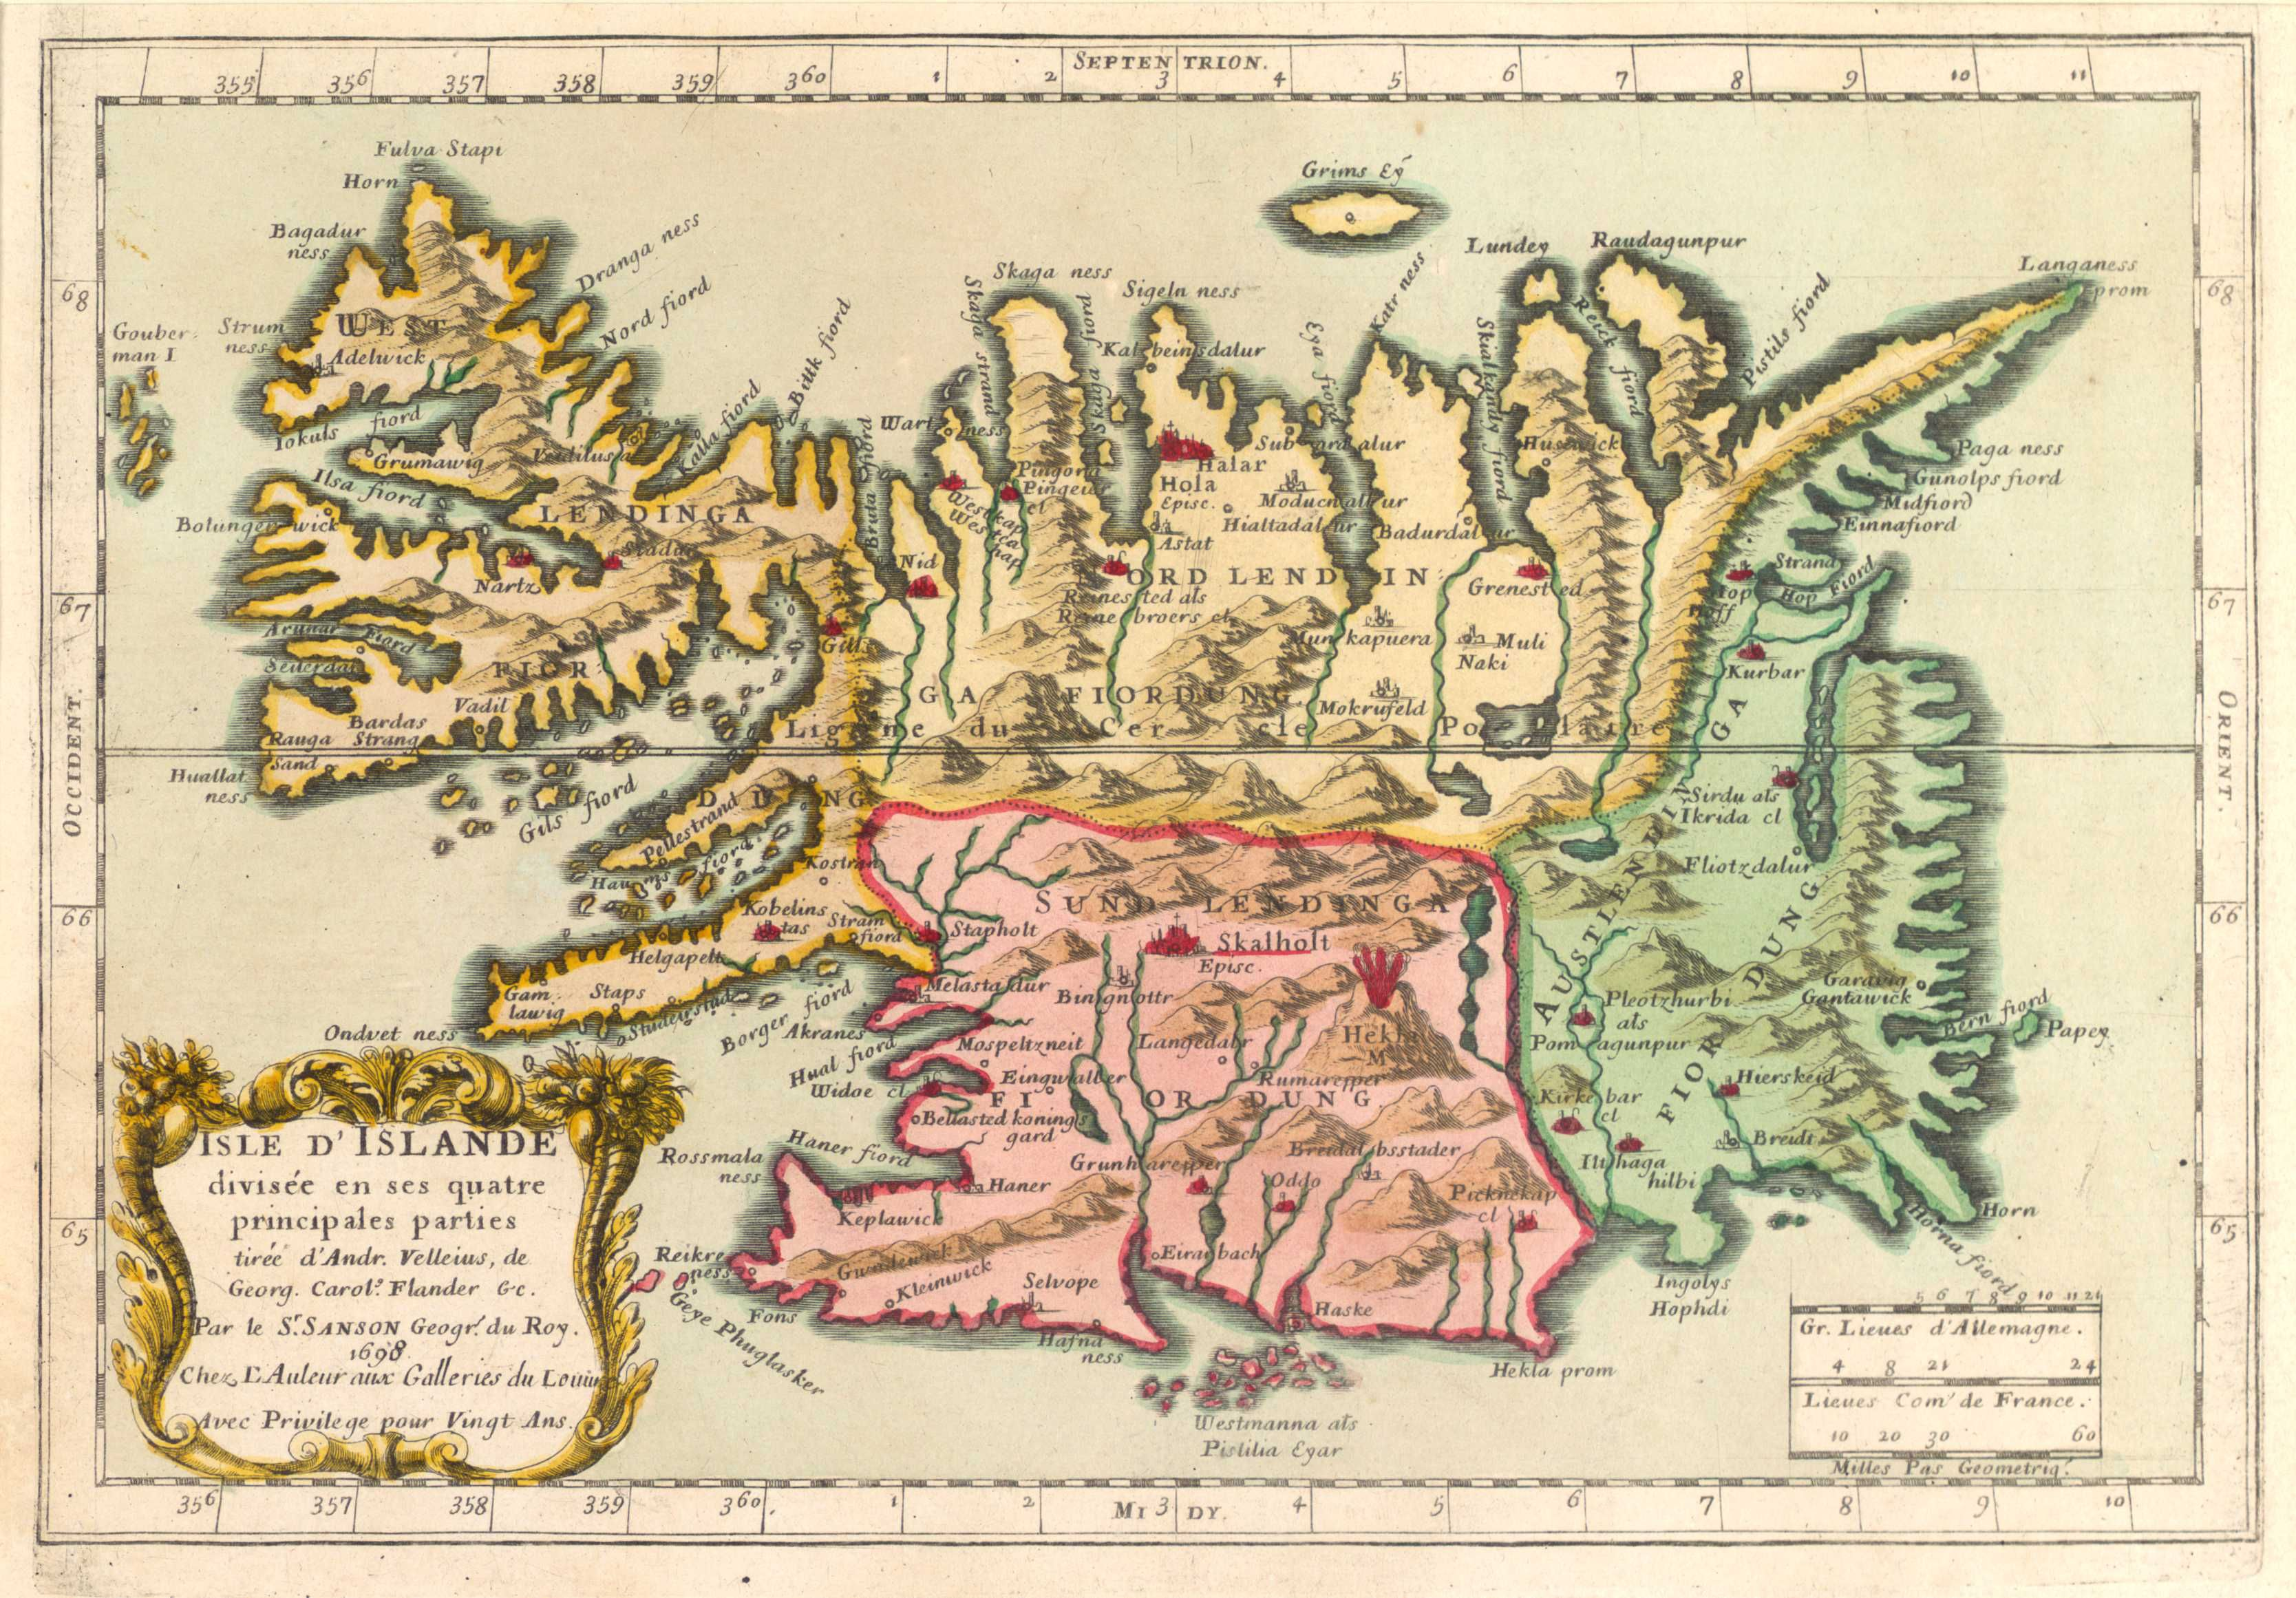 Pin by miss otto on Map of Iceland | Pinterest | Map, Vintage world ...